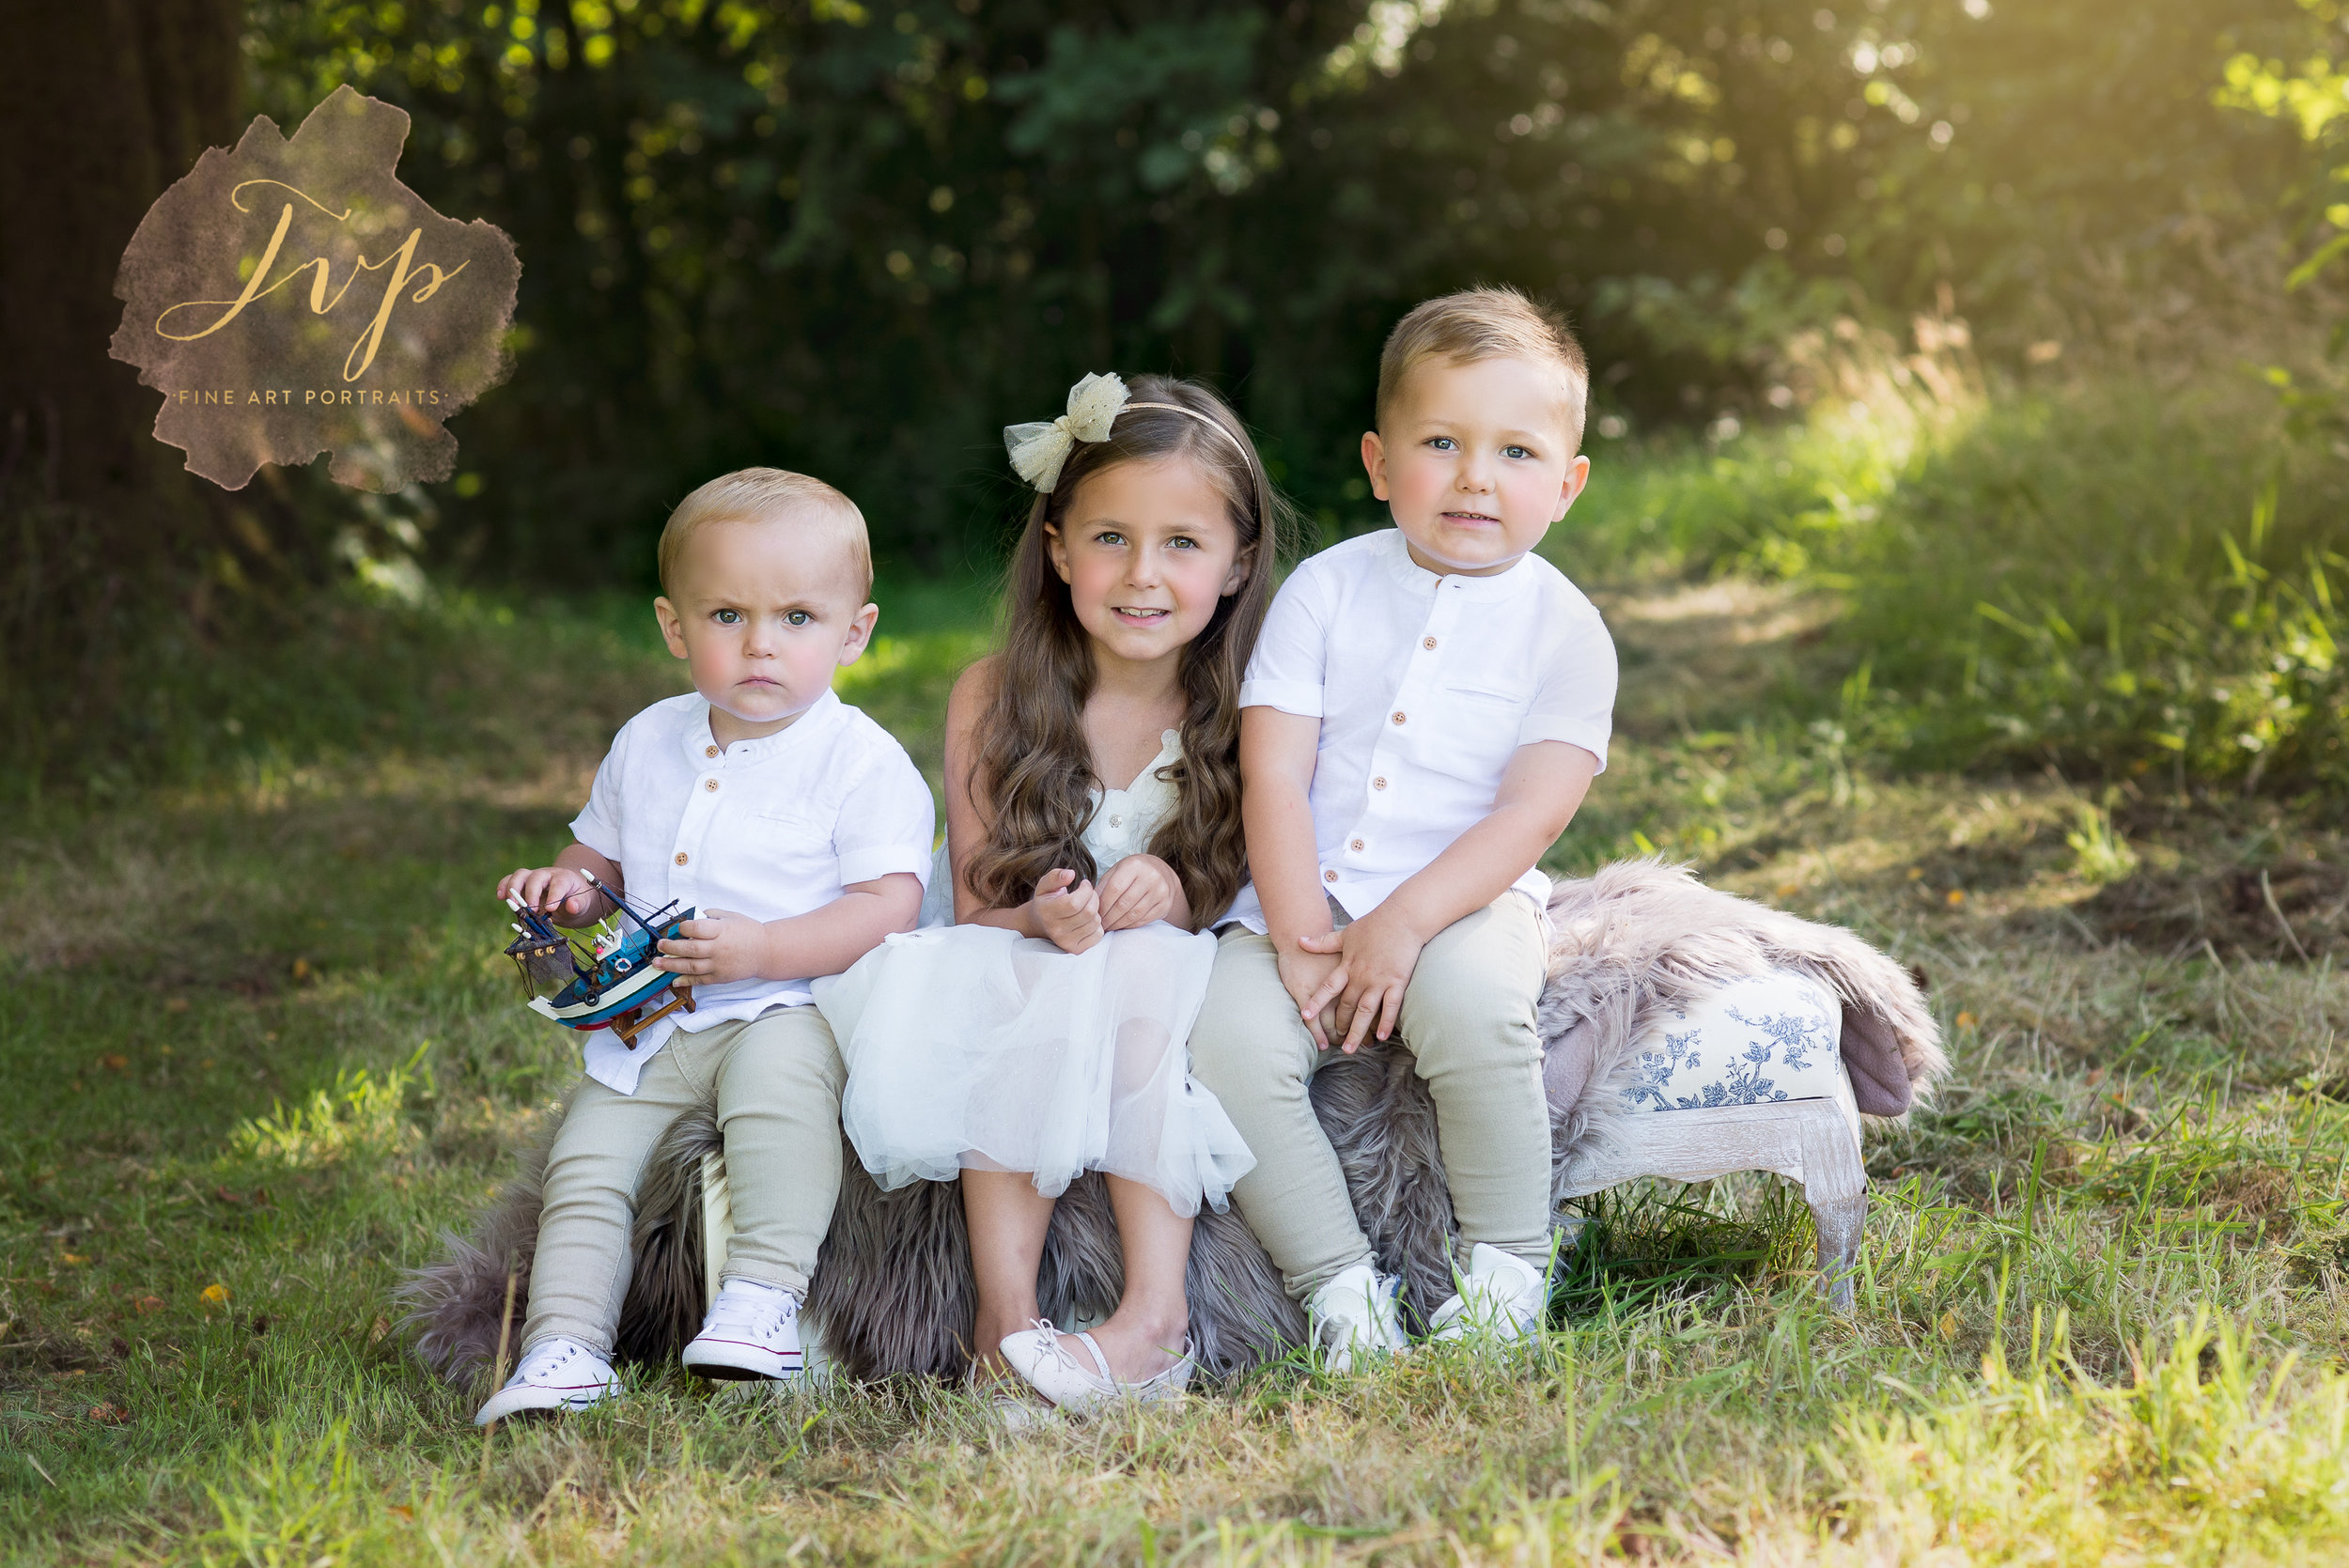 renfrewshire-photographer-outdoor-siblings-shoot